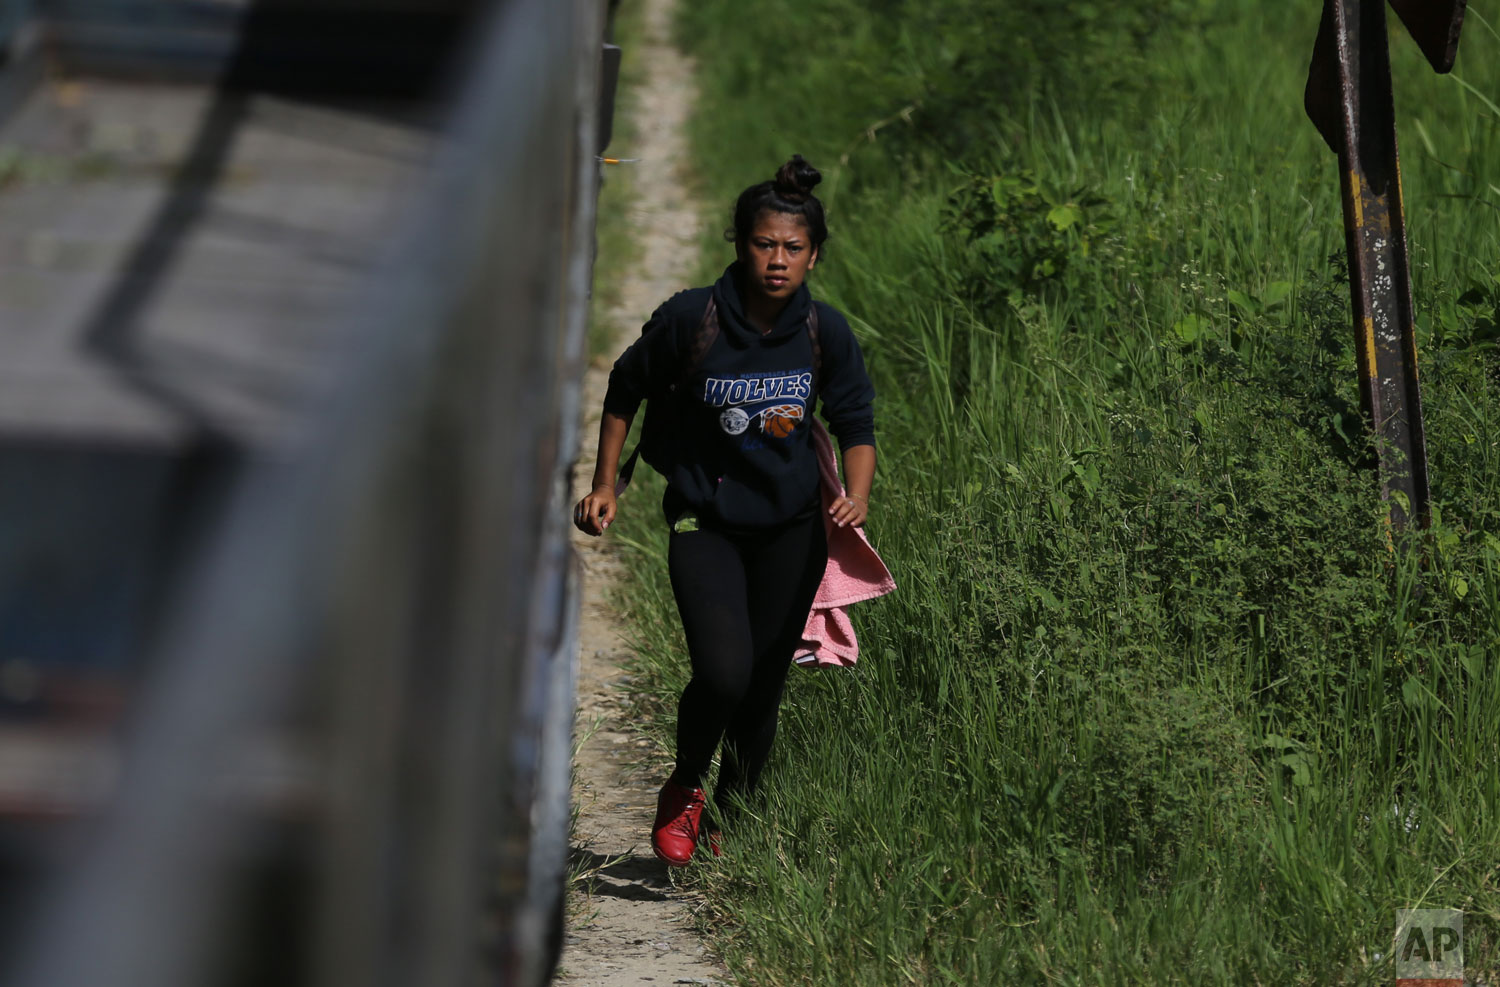 In this June 25, 2019 photo, 19-year-old Honduran Saily Yasm�n Andino runs to climb aboard a freight train, near Salto de Agua, Mexico. Hours later the train stopped near the Tabasco state town of Tacotalpa and Andino hopped off to buy some cheese-stuffed rolls. When the train crowded with migrants began to move again, she hustled to clamber back aboard. But the train suddenly stopped and rolled back. She lost her grip and fell beneath its wheels. (AP Photo/Marco Ugarte)